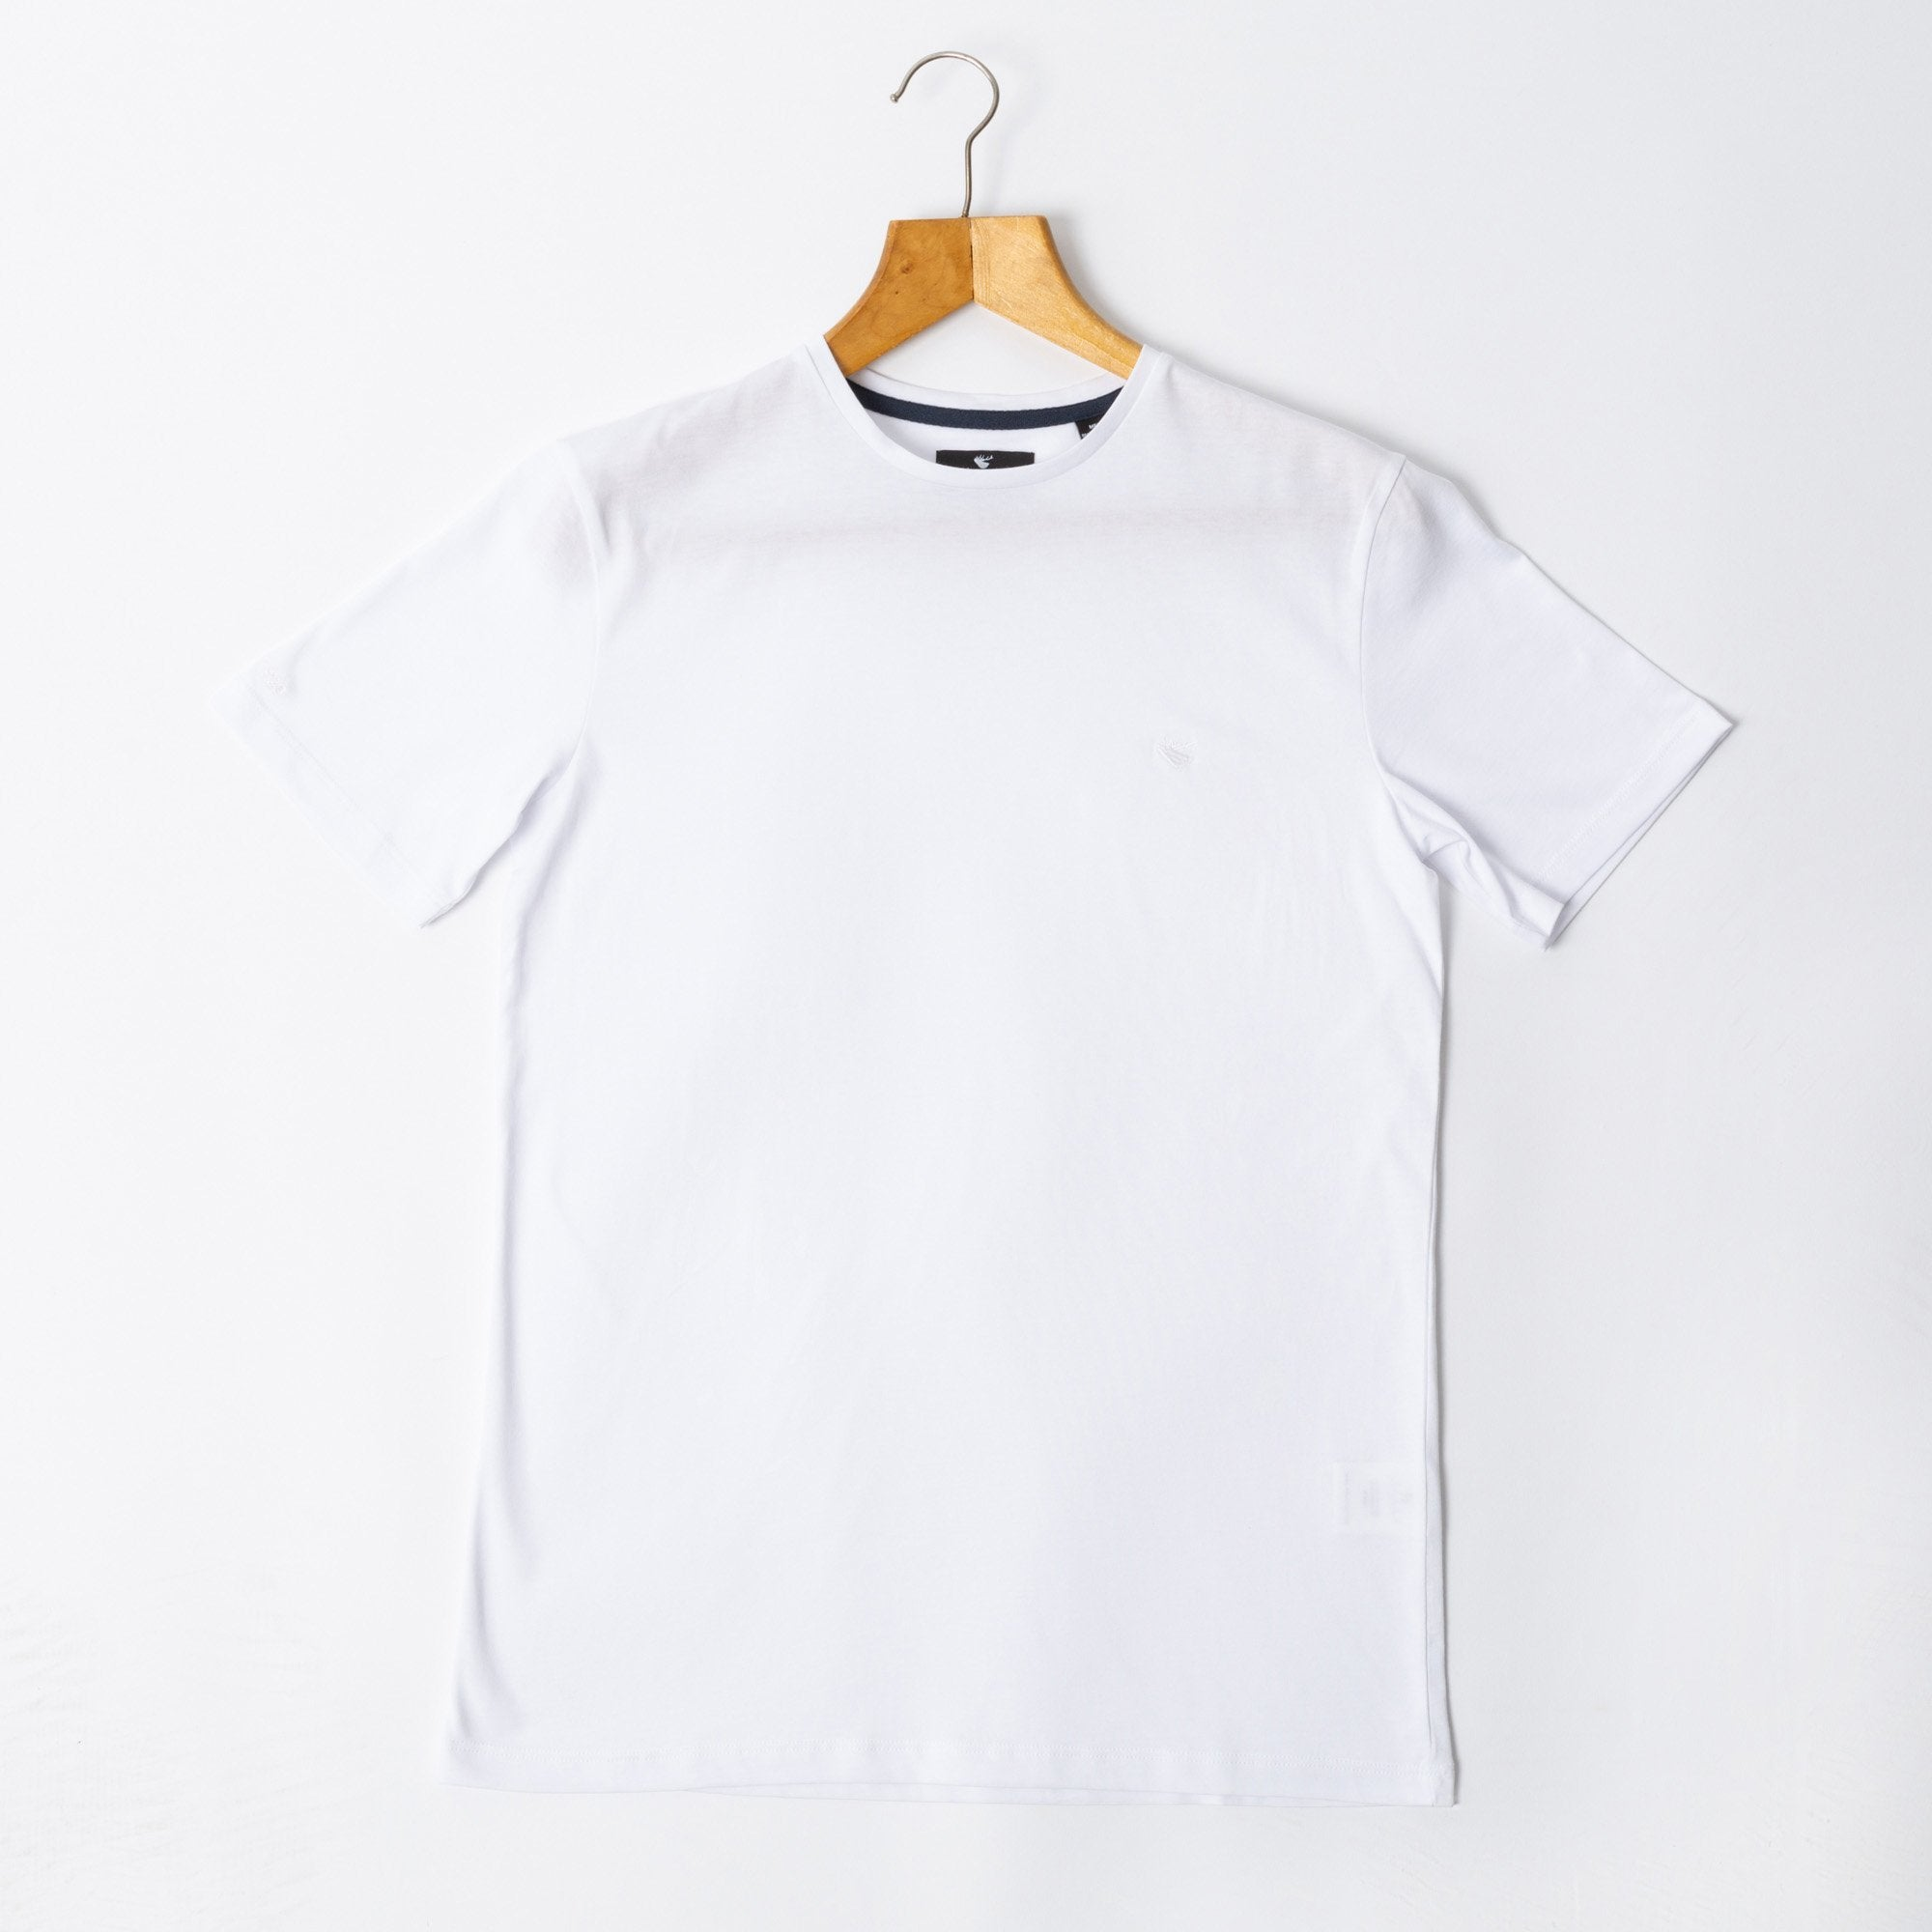 Goodwin Smith Clothing S / White / Cotton MARRISON WHITE